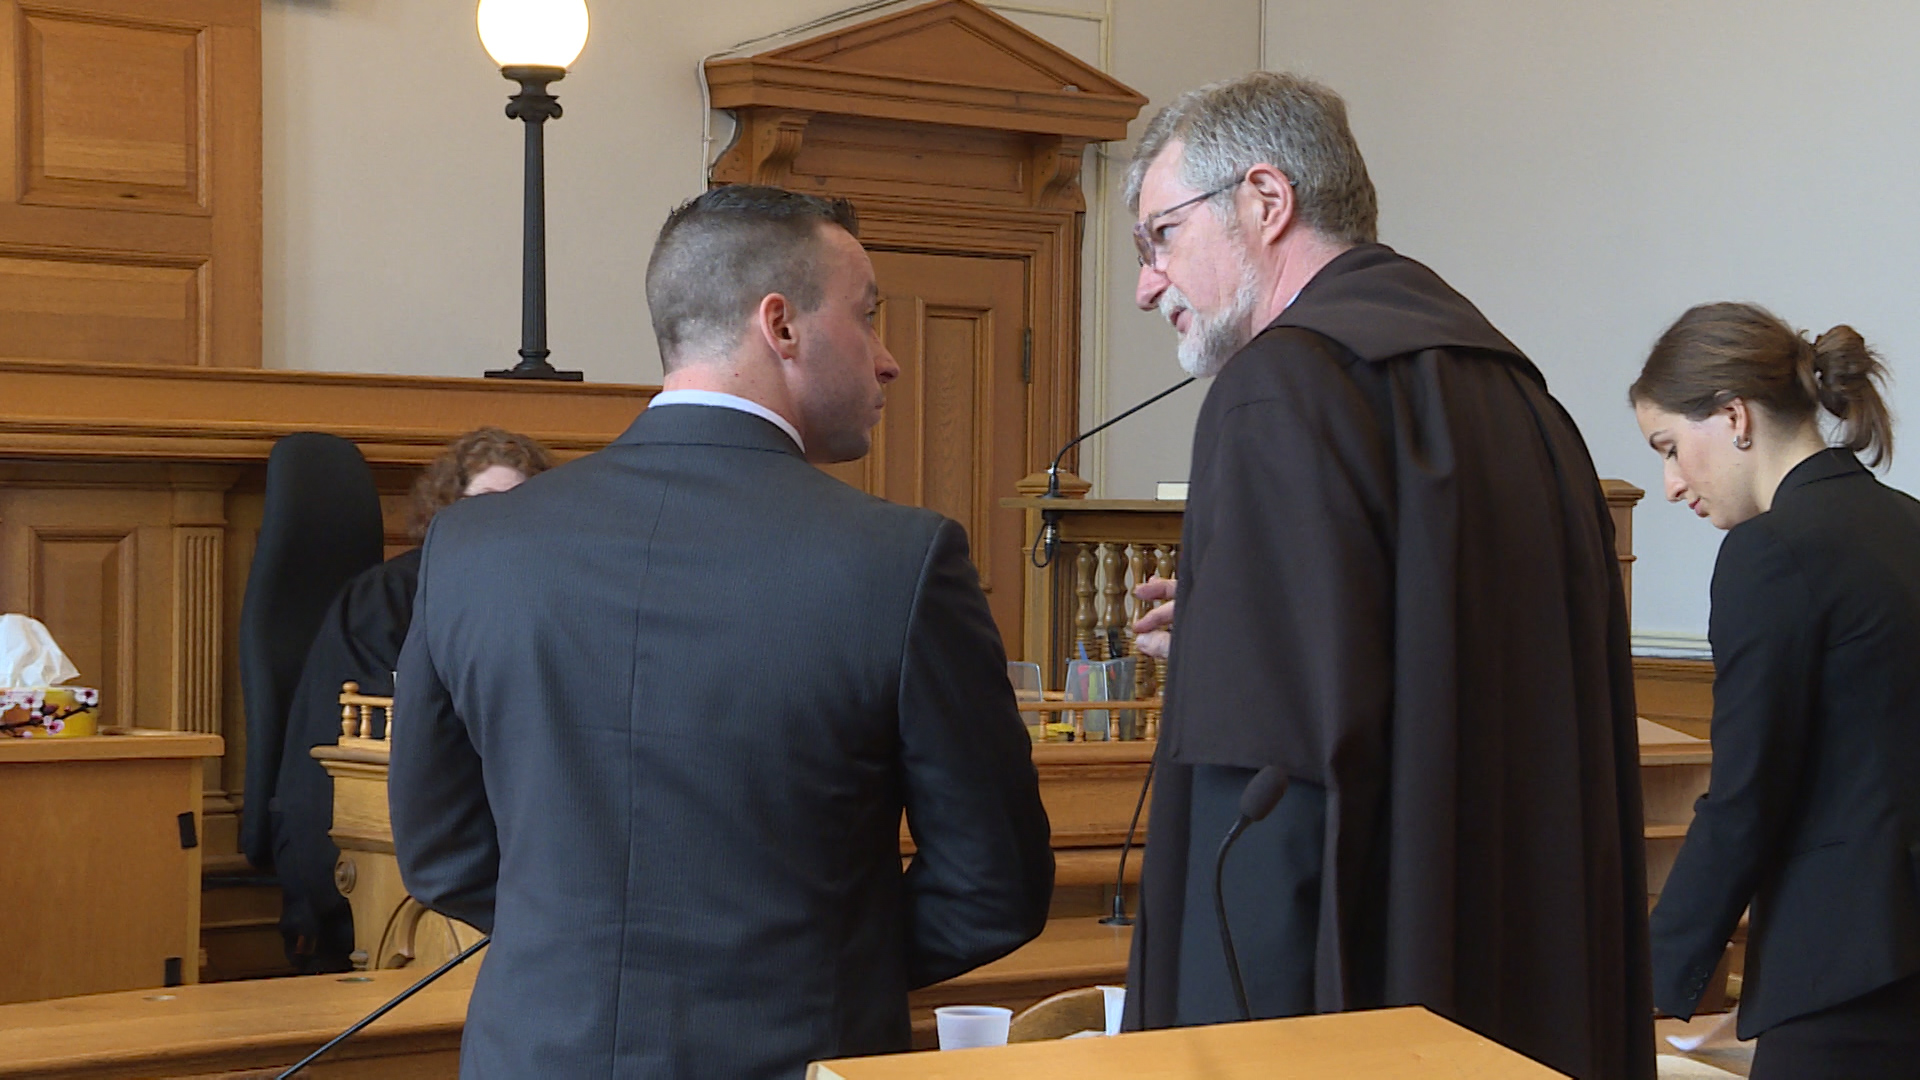 Cameron Lockhart (left) was defense lawyer Nick Avis' lone witness called (Photo:Ryan Harding/NTV)